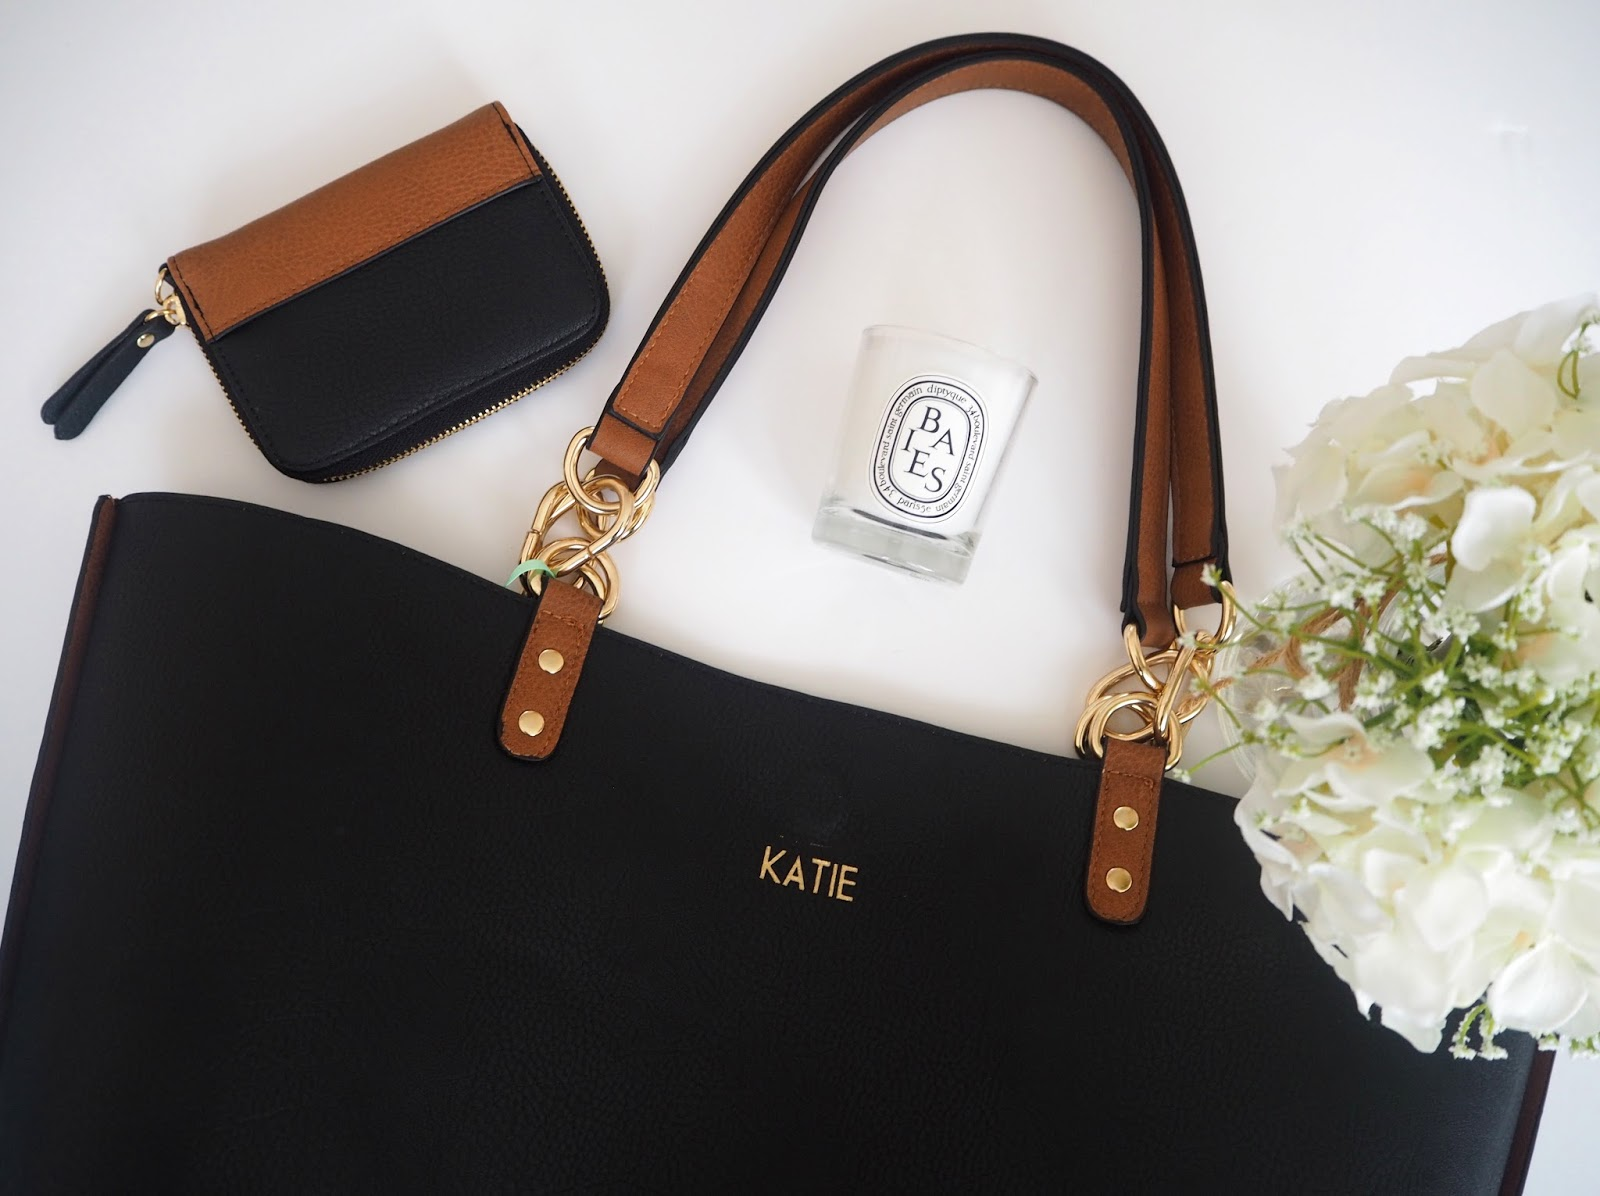 Oasis Love Letters Monogrammed Bags, Katie Kirk Loves, Personalised Bag, UK Blogger, UK Fashion Blogger, Monogramming, Oasis Fashion, Christmas Gift Idea